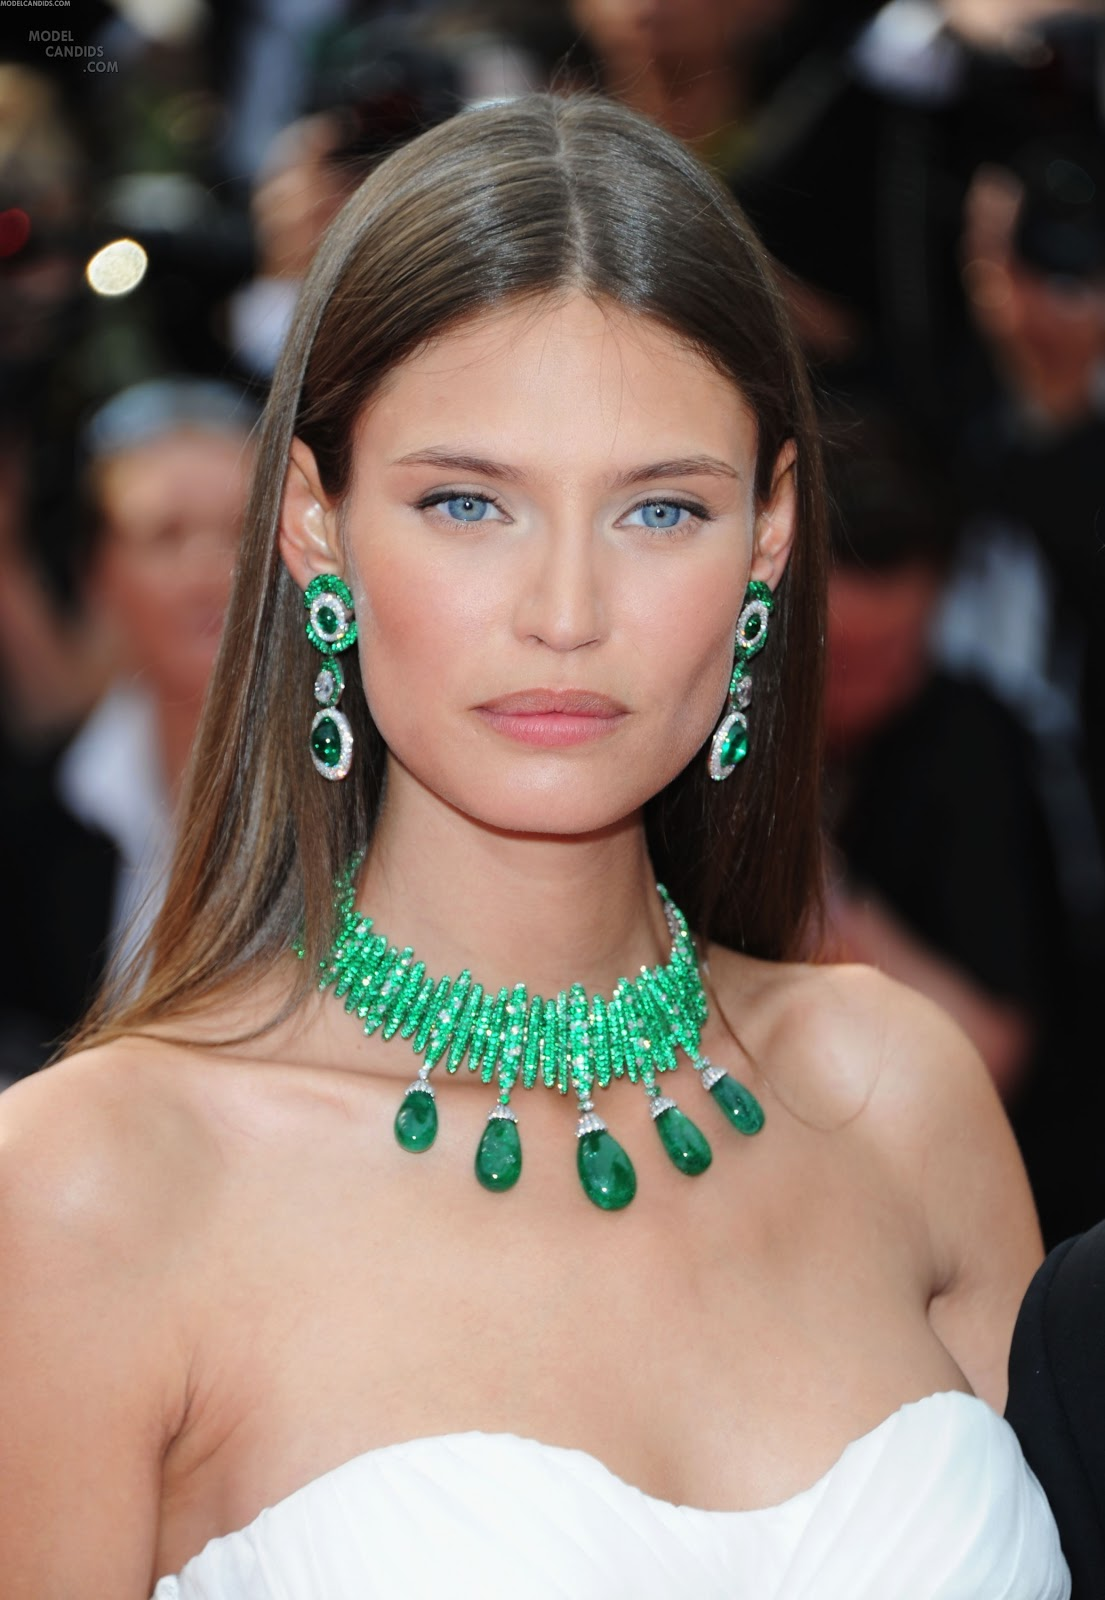 Bianca balti photo gallery Childhood Photos of Famous Rock Stars Pinterest John lennon